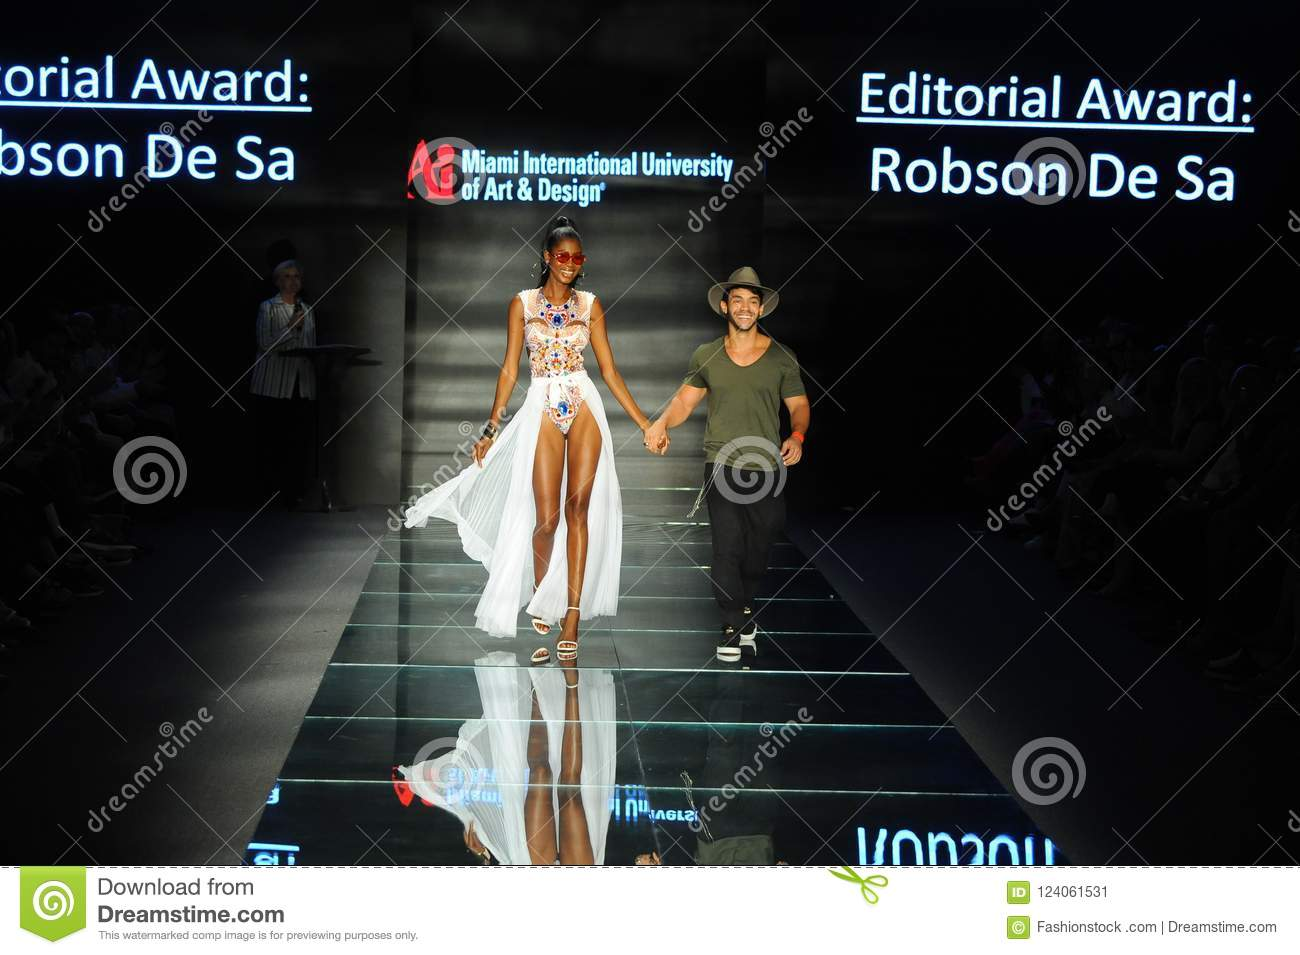 Robson De Sa Walks The Runway During Fashion Show Presented By Designers Of Miami International University Of Art And Design Editorial Photo Image Of Perfect Beauty 124061531